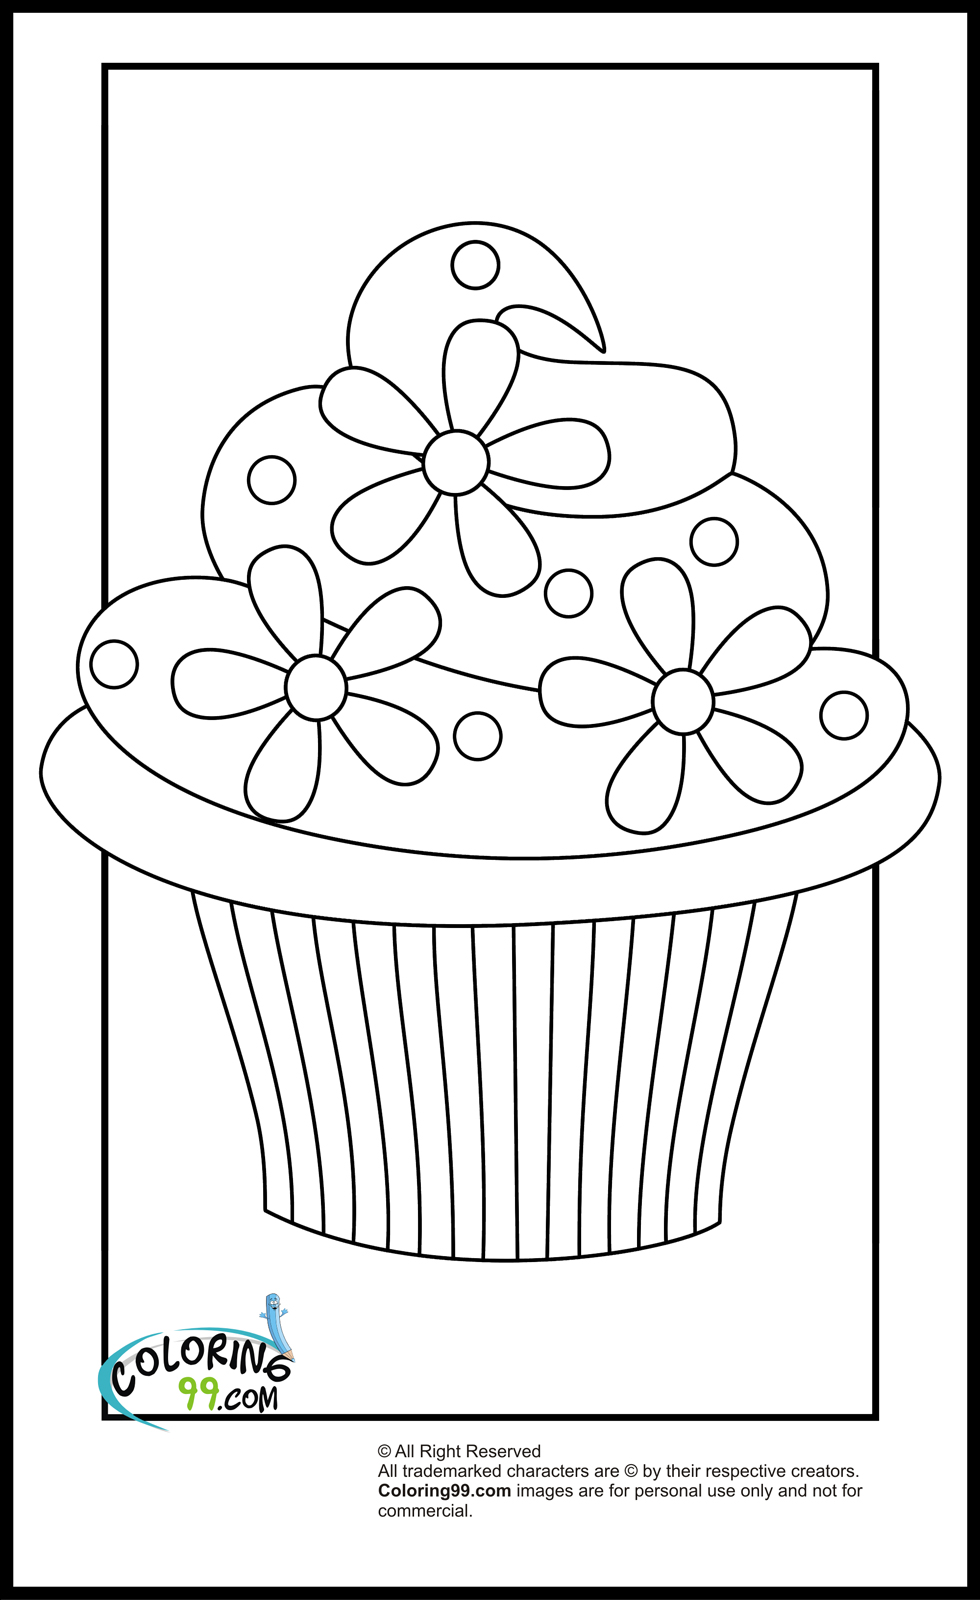 coloring template coloring for kids coloring template coloring for kids coloring kids template coloring for